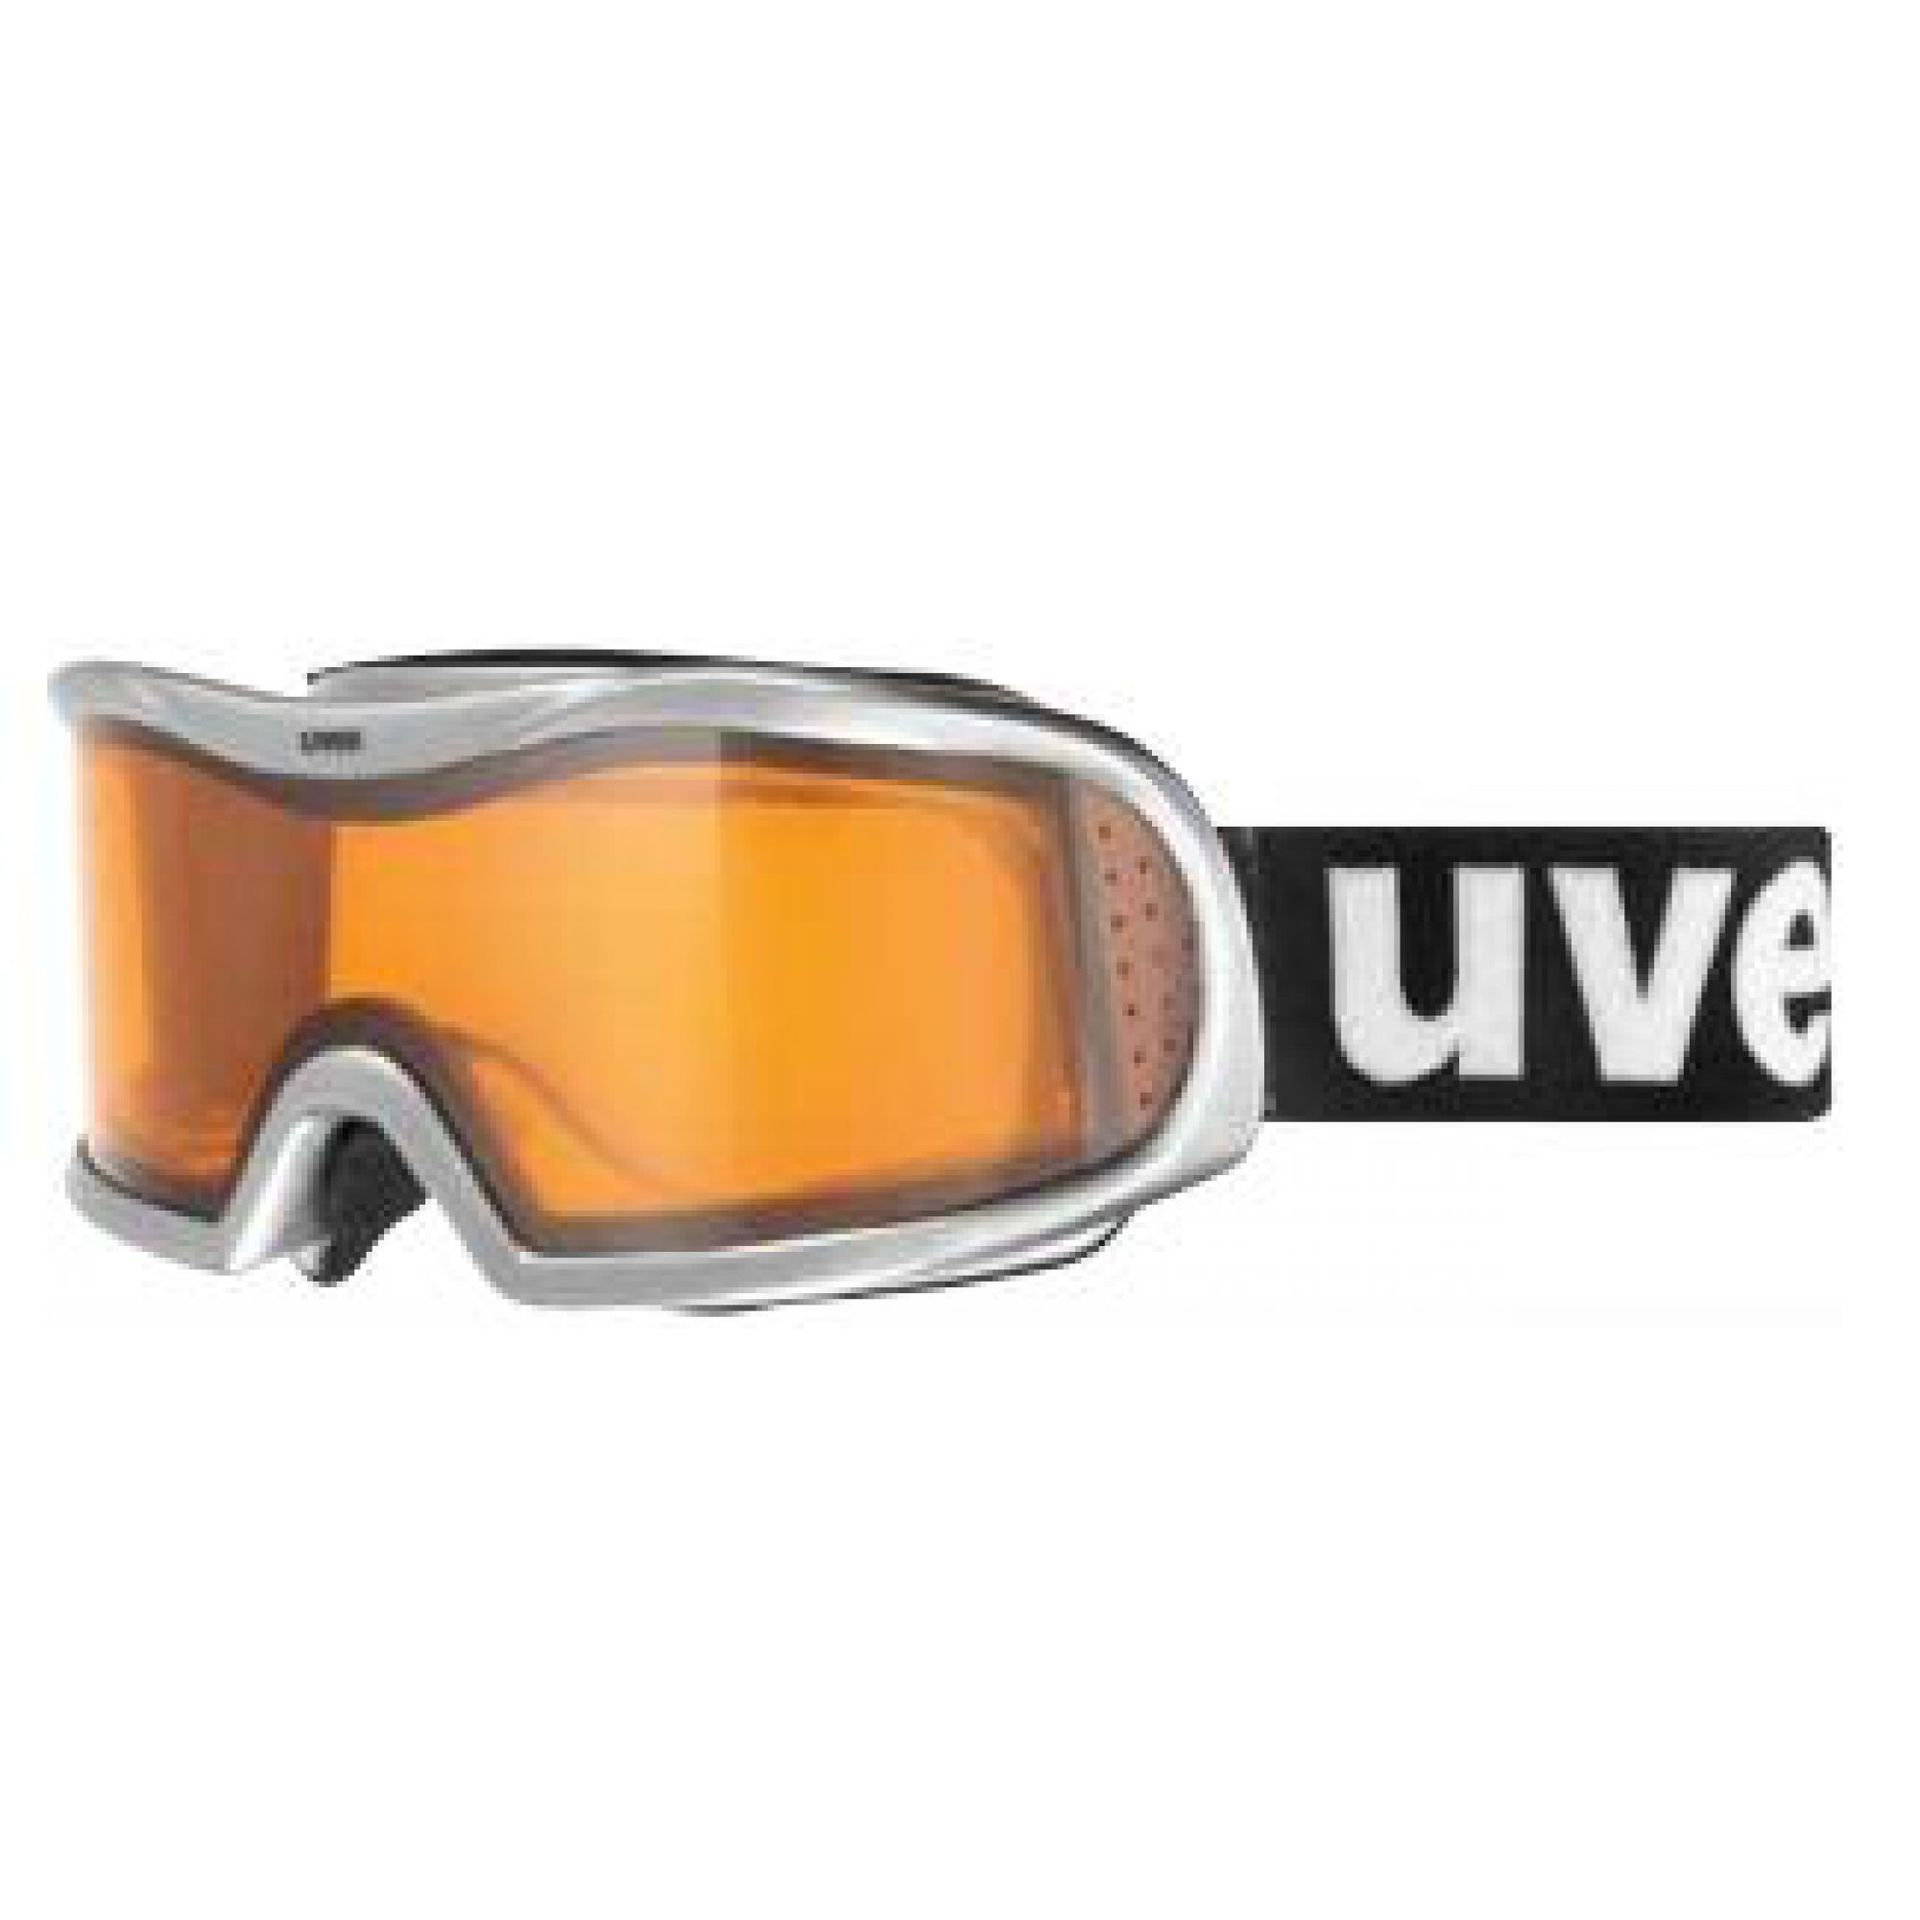 GOGLE UVEX VISION OPTIC L SREBRNY